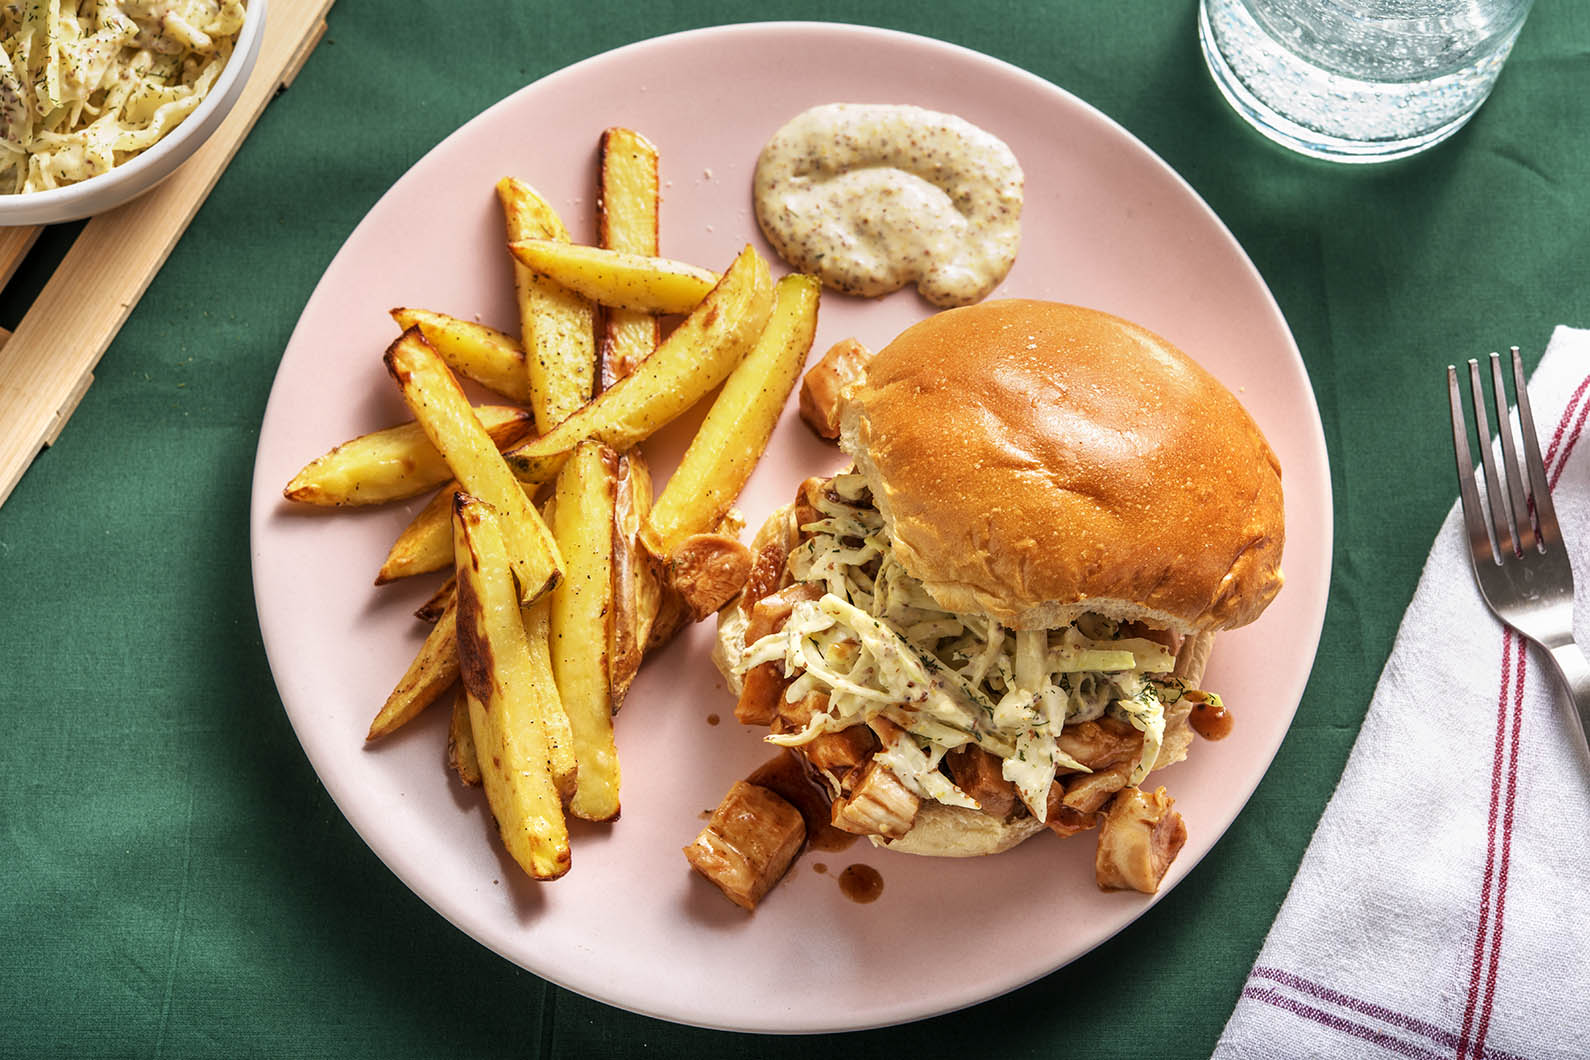 BBQ Chicken Sandwiches with oven fries and dilly slaw